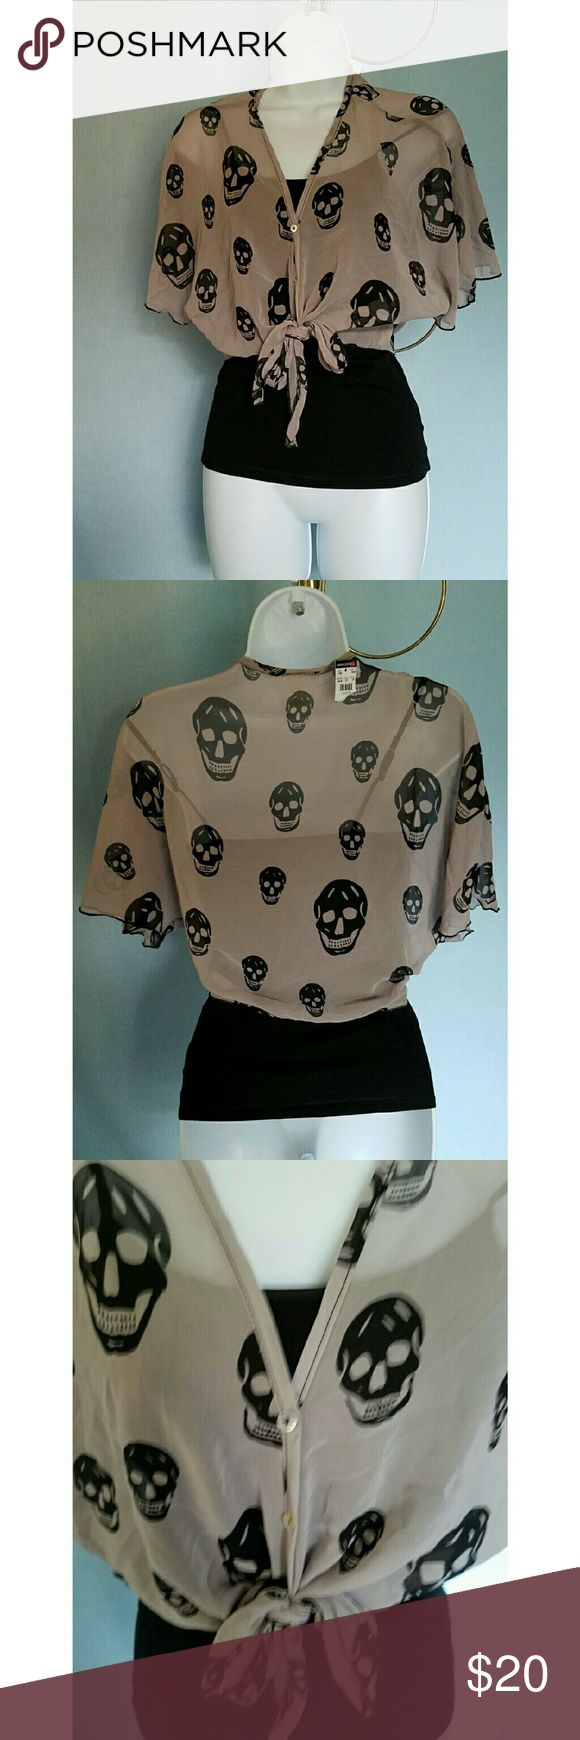 🚩DROP🚩BODY CENTRAL SHEER CROP SKULL SHIRT BODY CENTRAL SHEER SKULL CROP SHIRT Great shirt that looks great with a camisole underneath. Can be tied at the waist. Body Central Tops Crop Tops